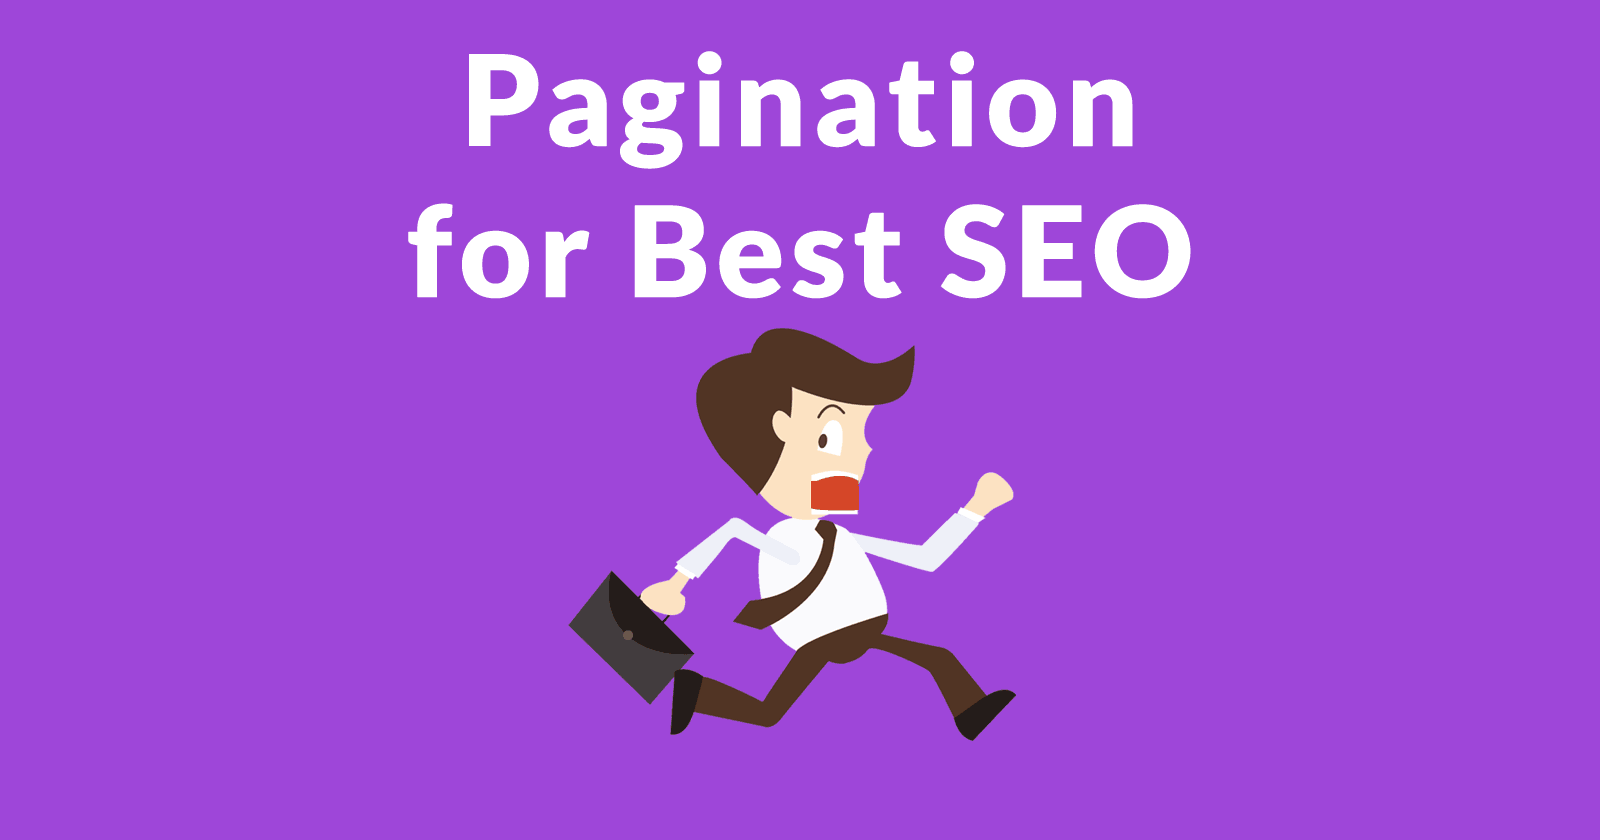 Google Shares Guidance on Pagination for SEO - Search Engine Journal